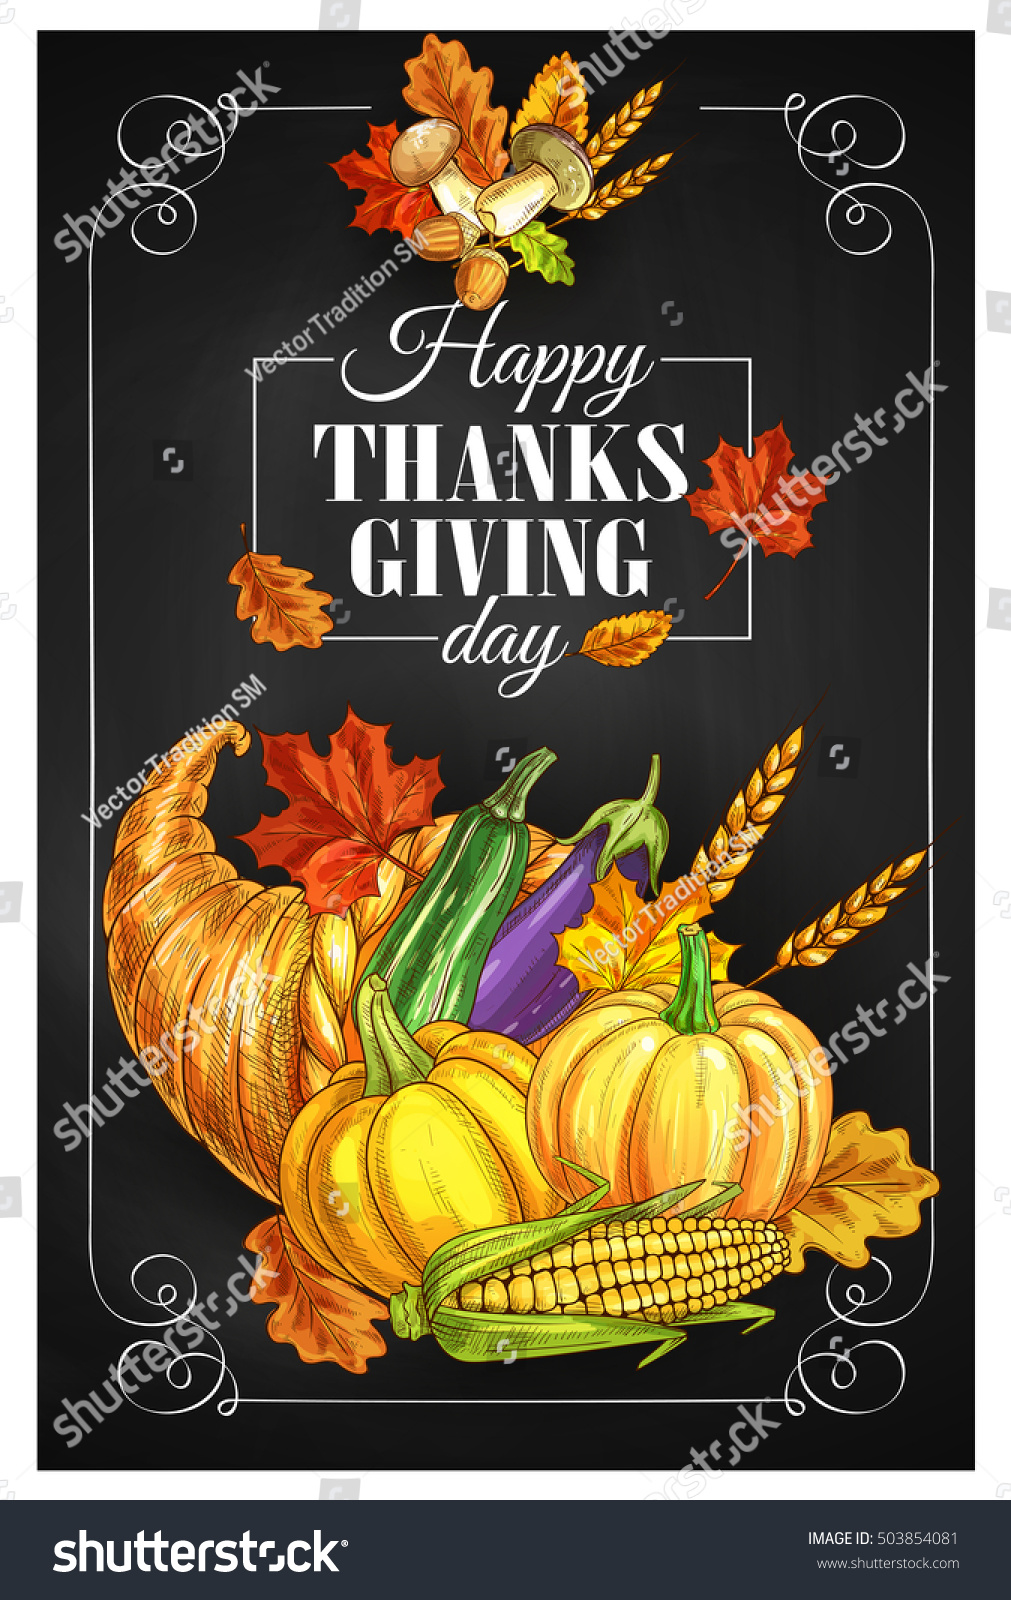 Thanksgiving day greeting banner posters traditional stock vector thanksgiving day greeting banner or posters traditional design of food abundance thanksgiving cornucopia with m4hsunfo